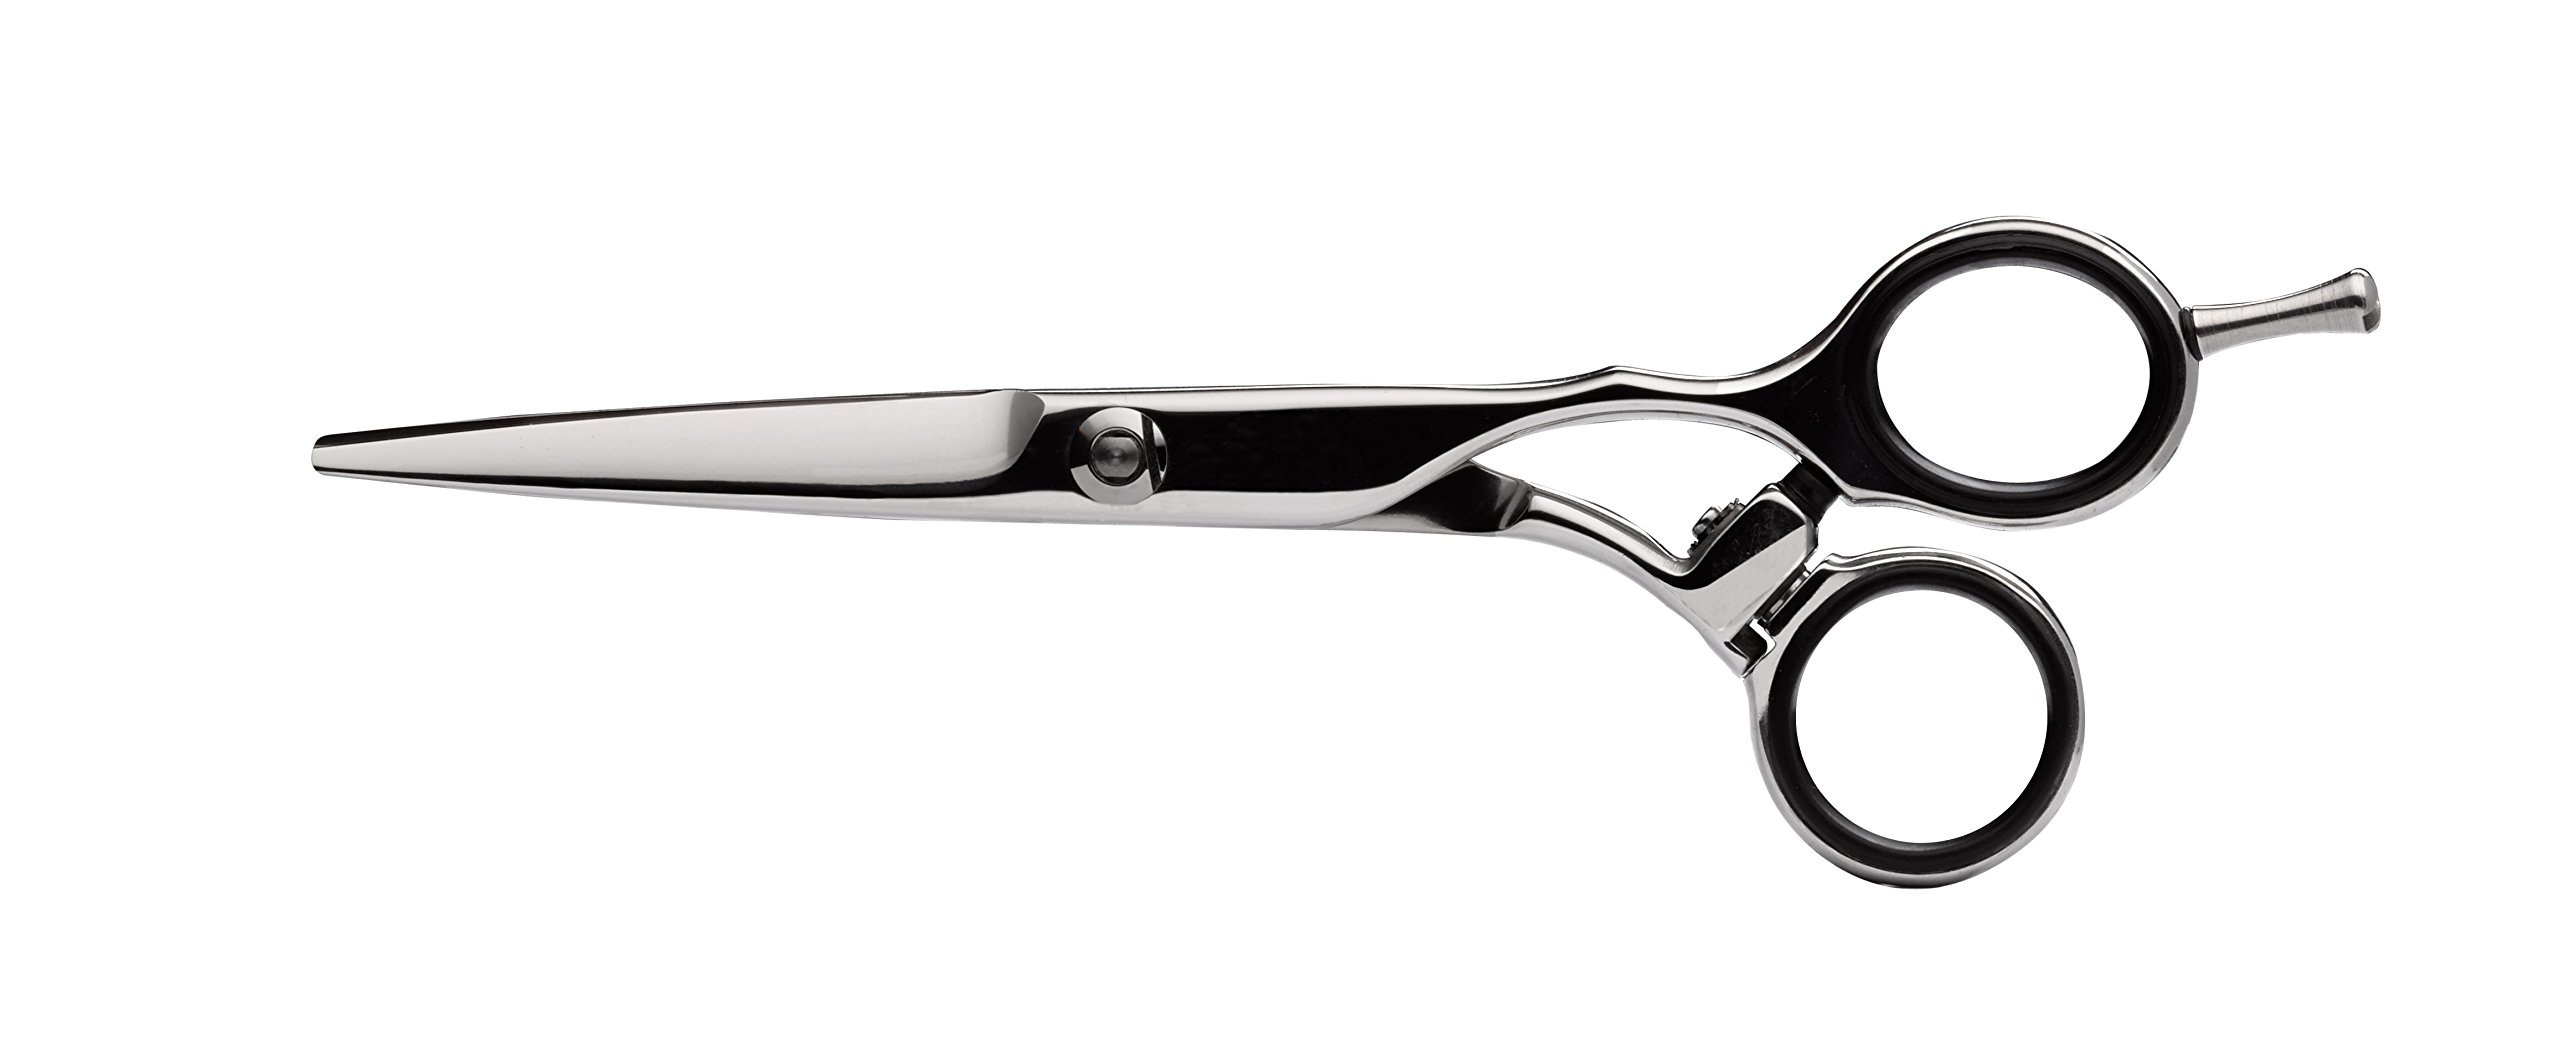 Fromm Flex Shear 5.5'' Black Collection